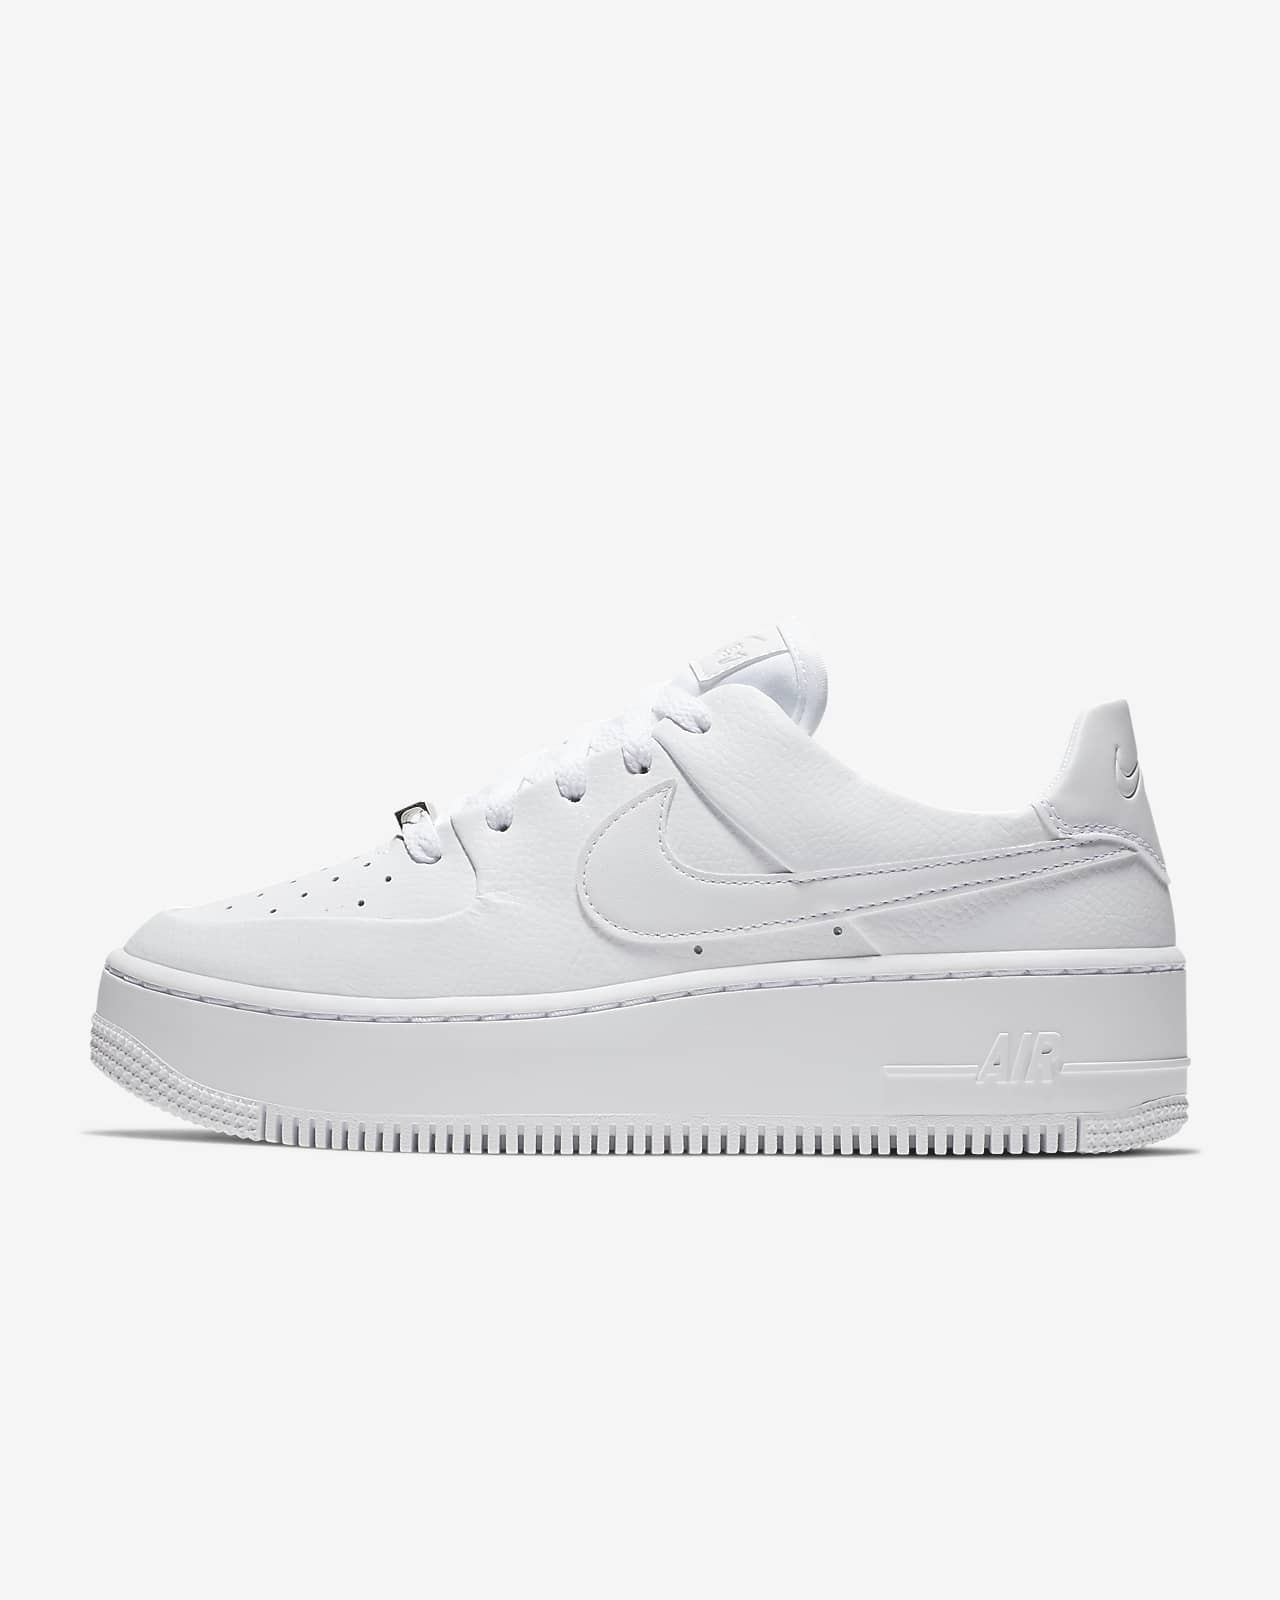 Nike Air Force 1 Low Cool Grey Yellow Where To Buy